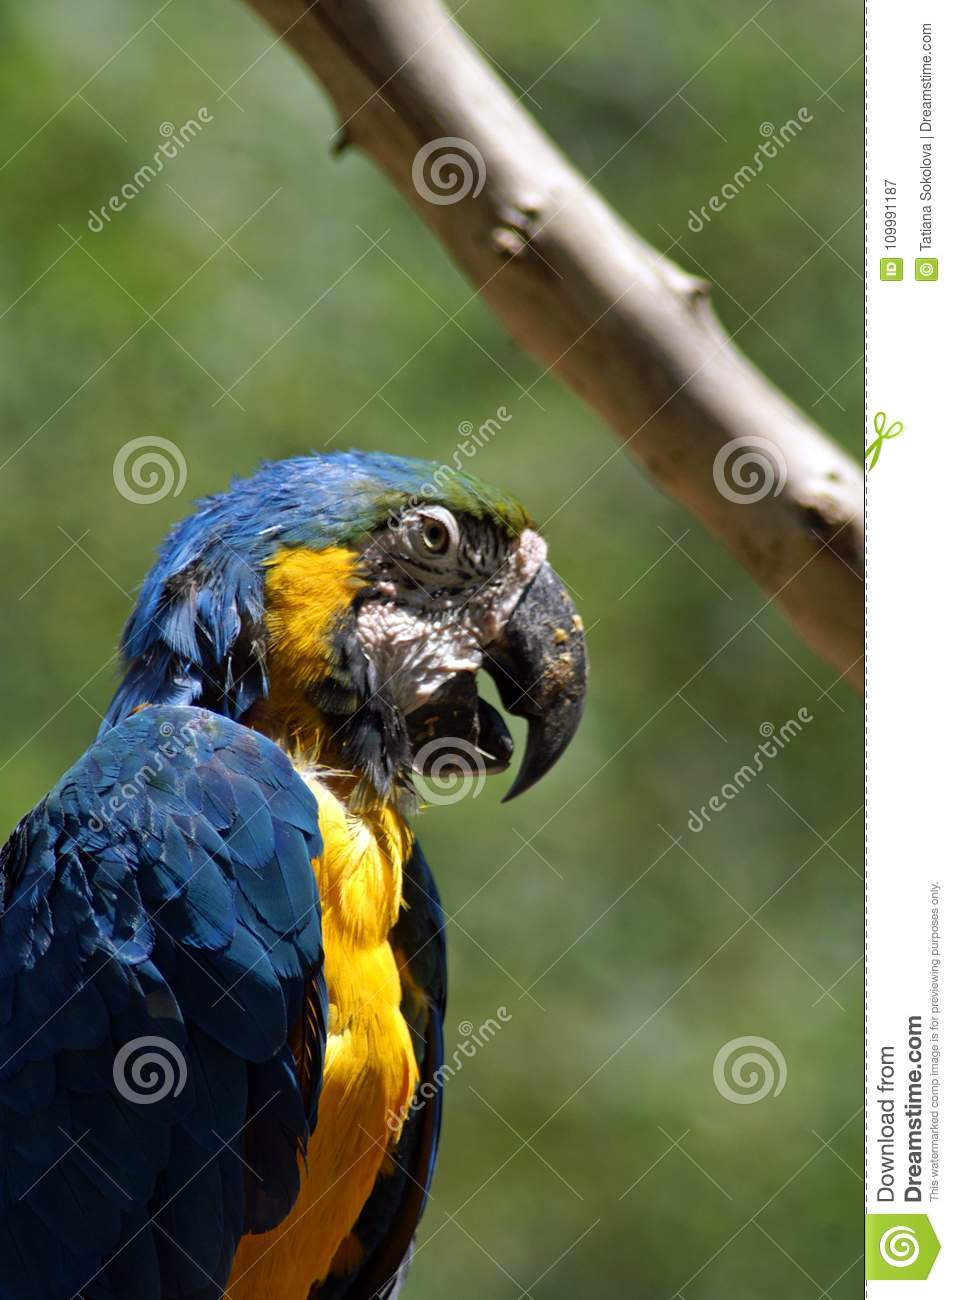 Blue ara. The Ara macaws are large striking parrots with long tails, long narrow wings and vividly coloured plumage